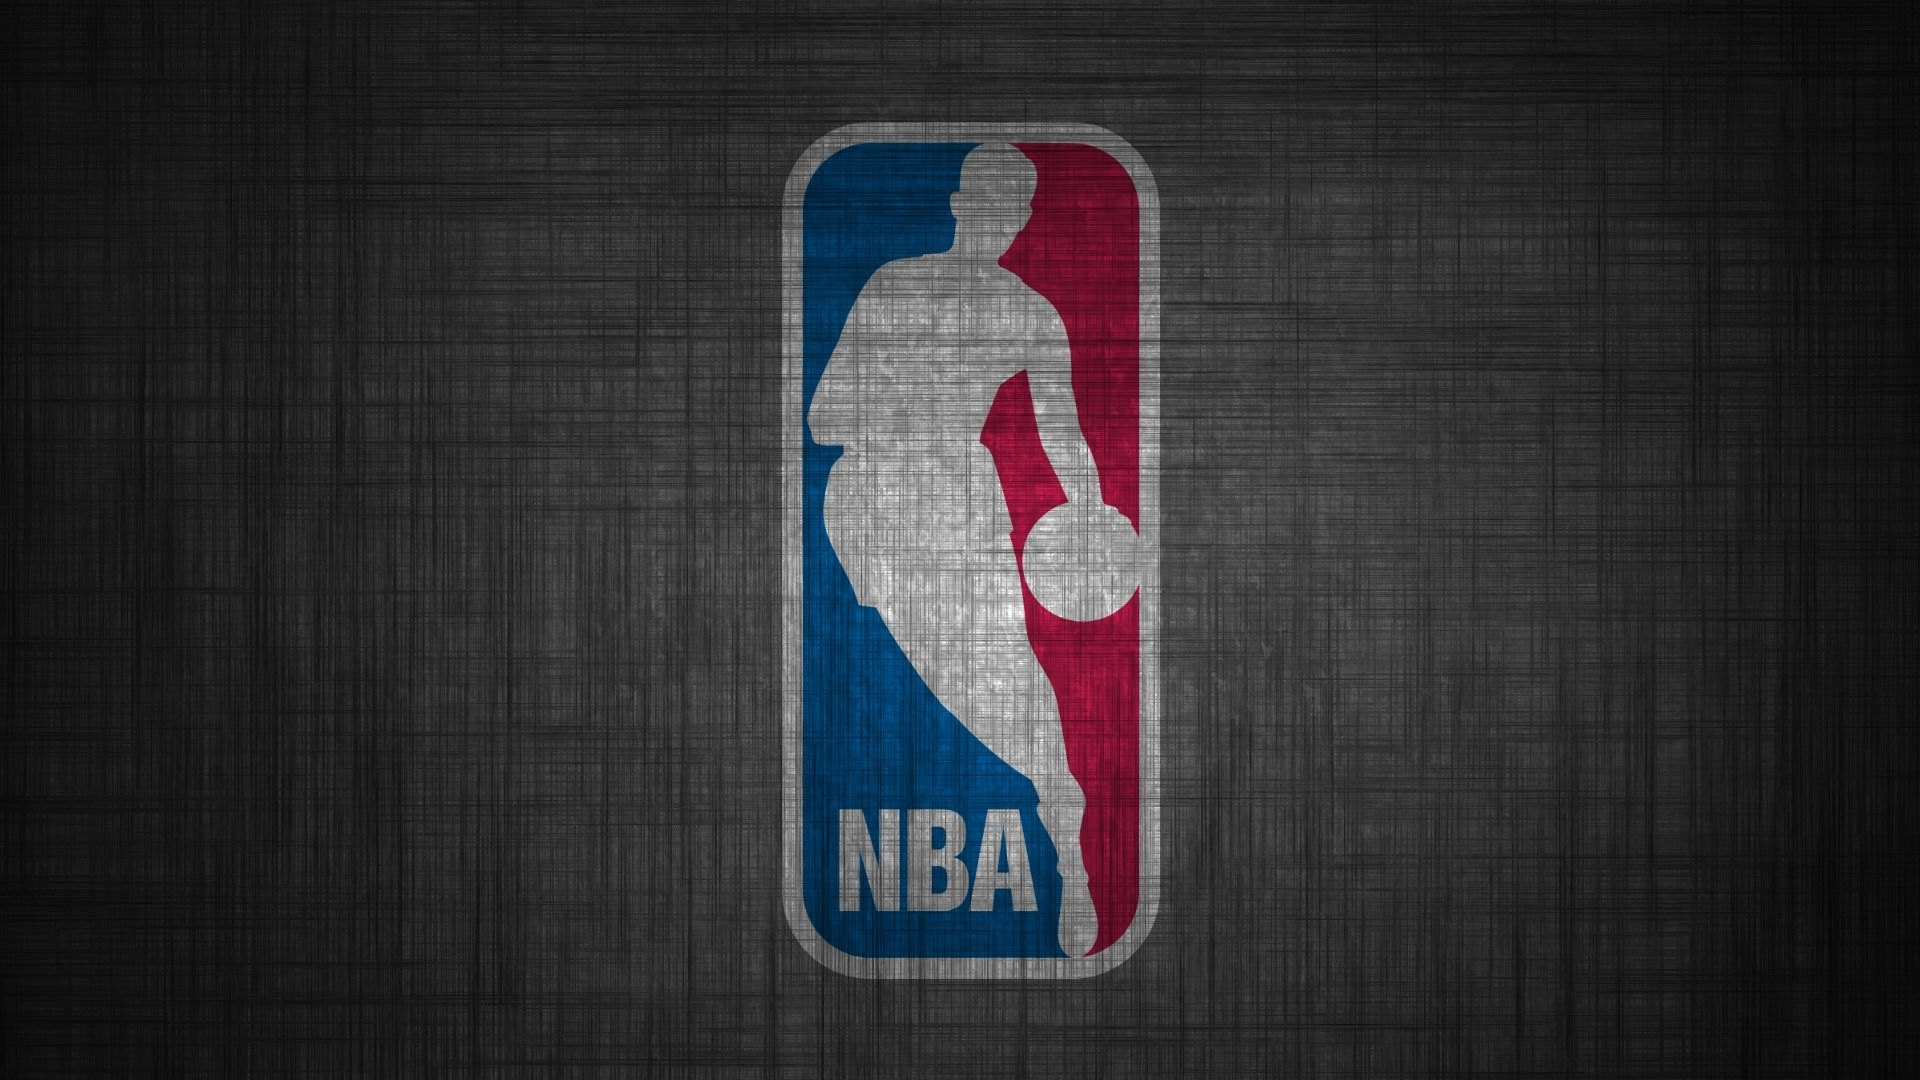 if you are a supporter of the nba than it's sure you like these